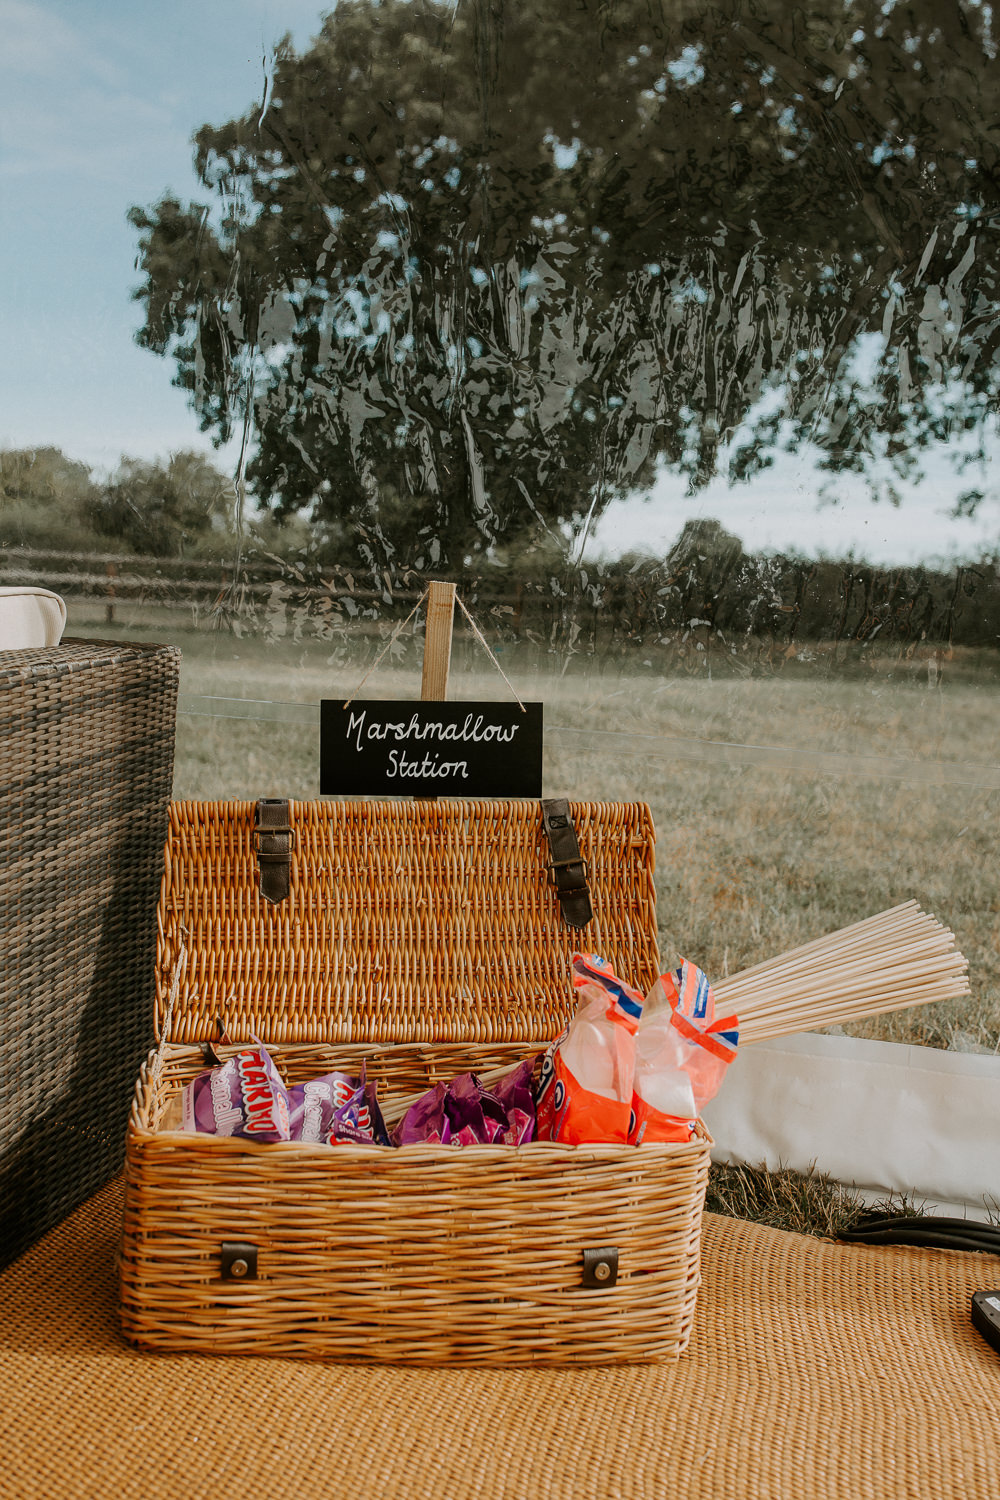 Marshmallows Smores City Cathedral Country Marquee Wedding Siobhan Beales Photography